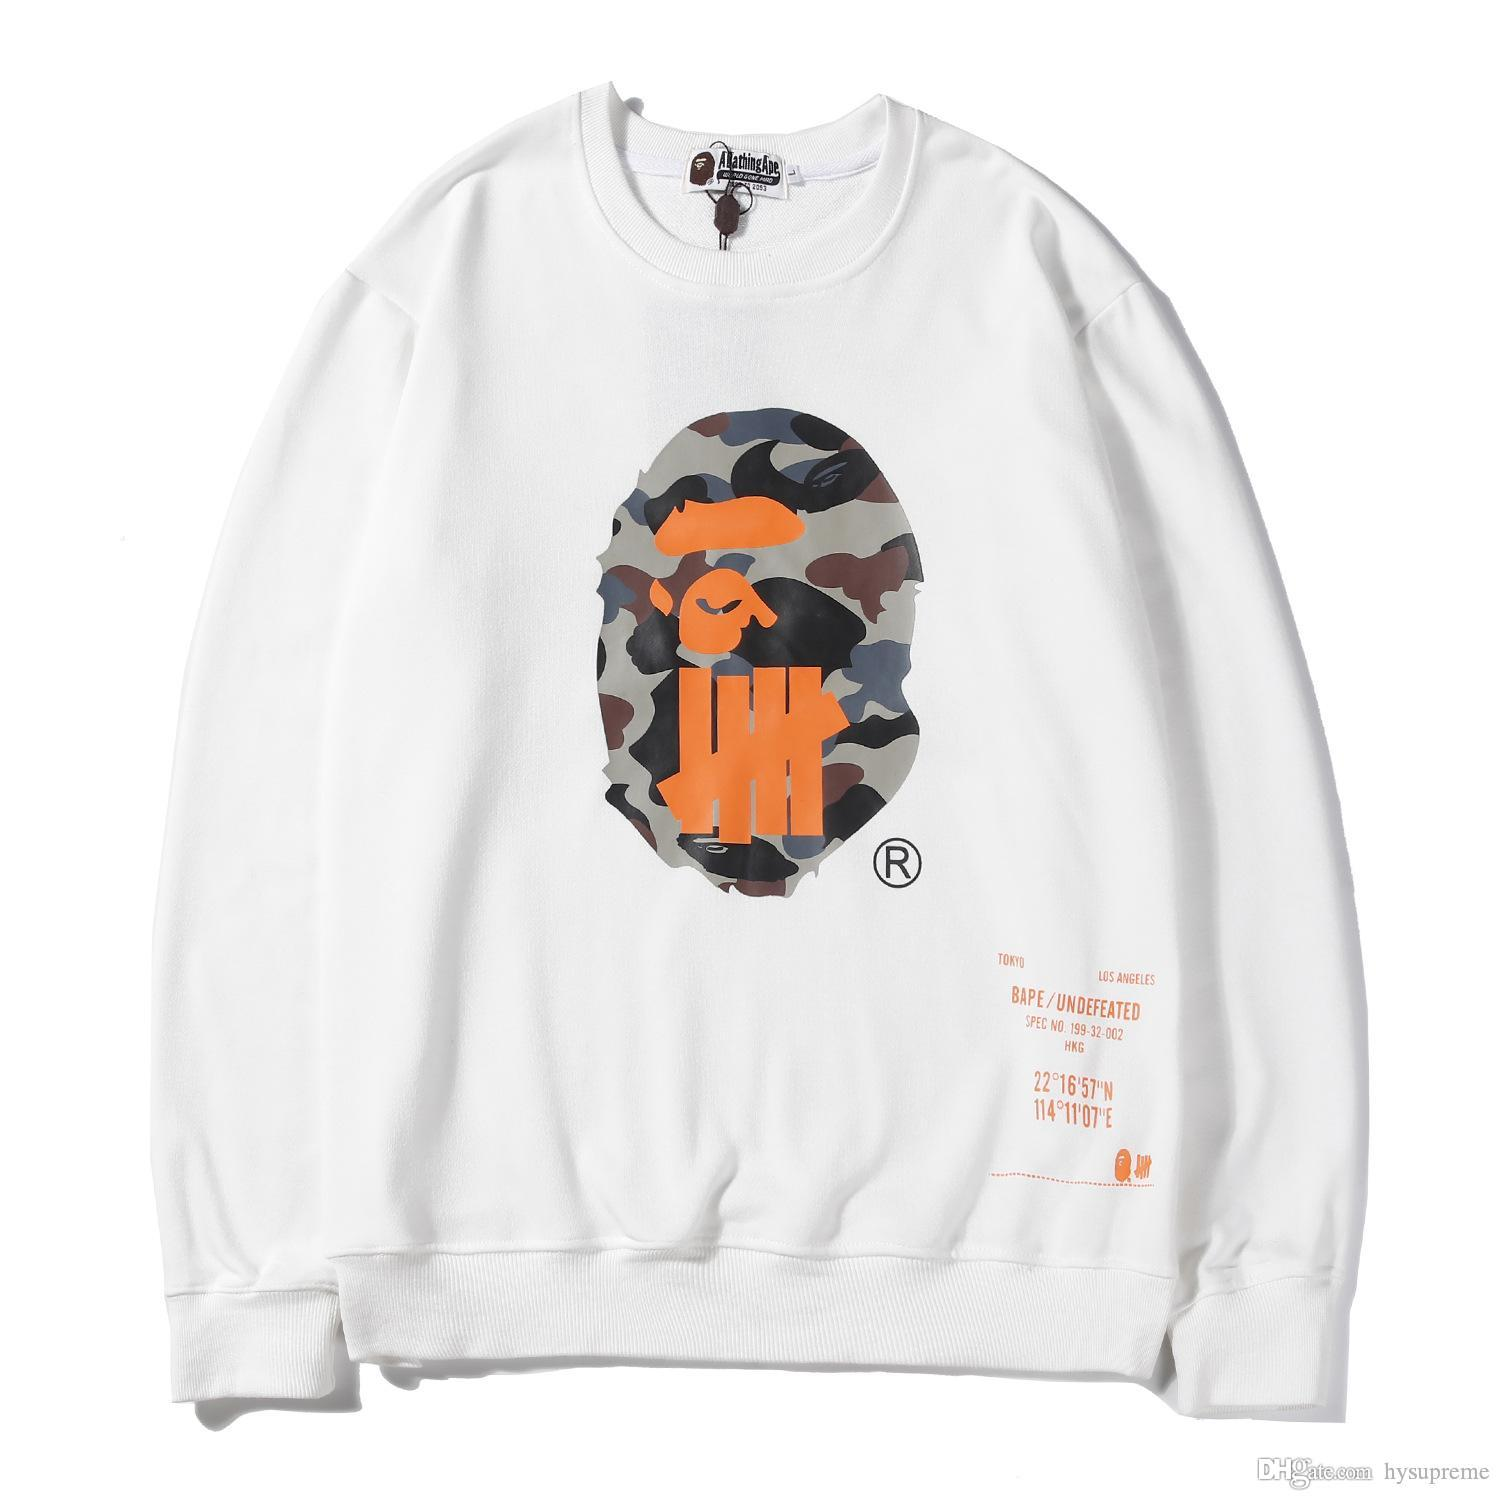 New Arrival Men's Black White Orange Cartoon Printed Thin Bottoming T-shirt Lover Pullover Round Neck Sweater Hoodies